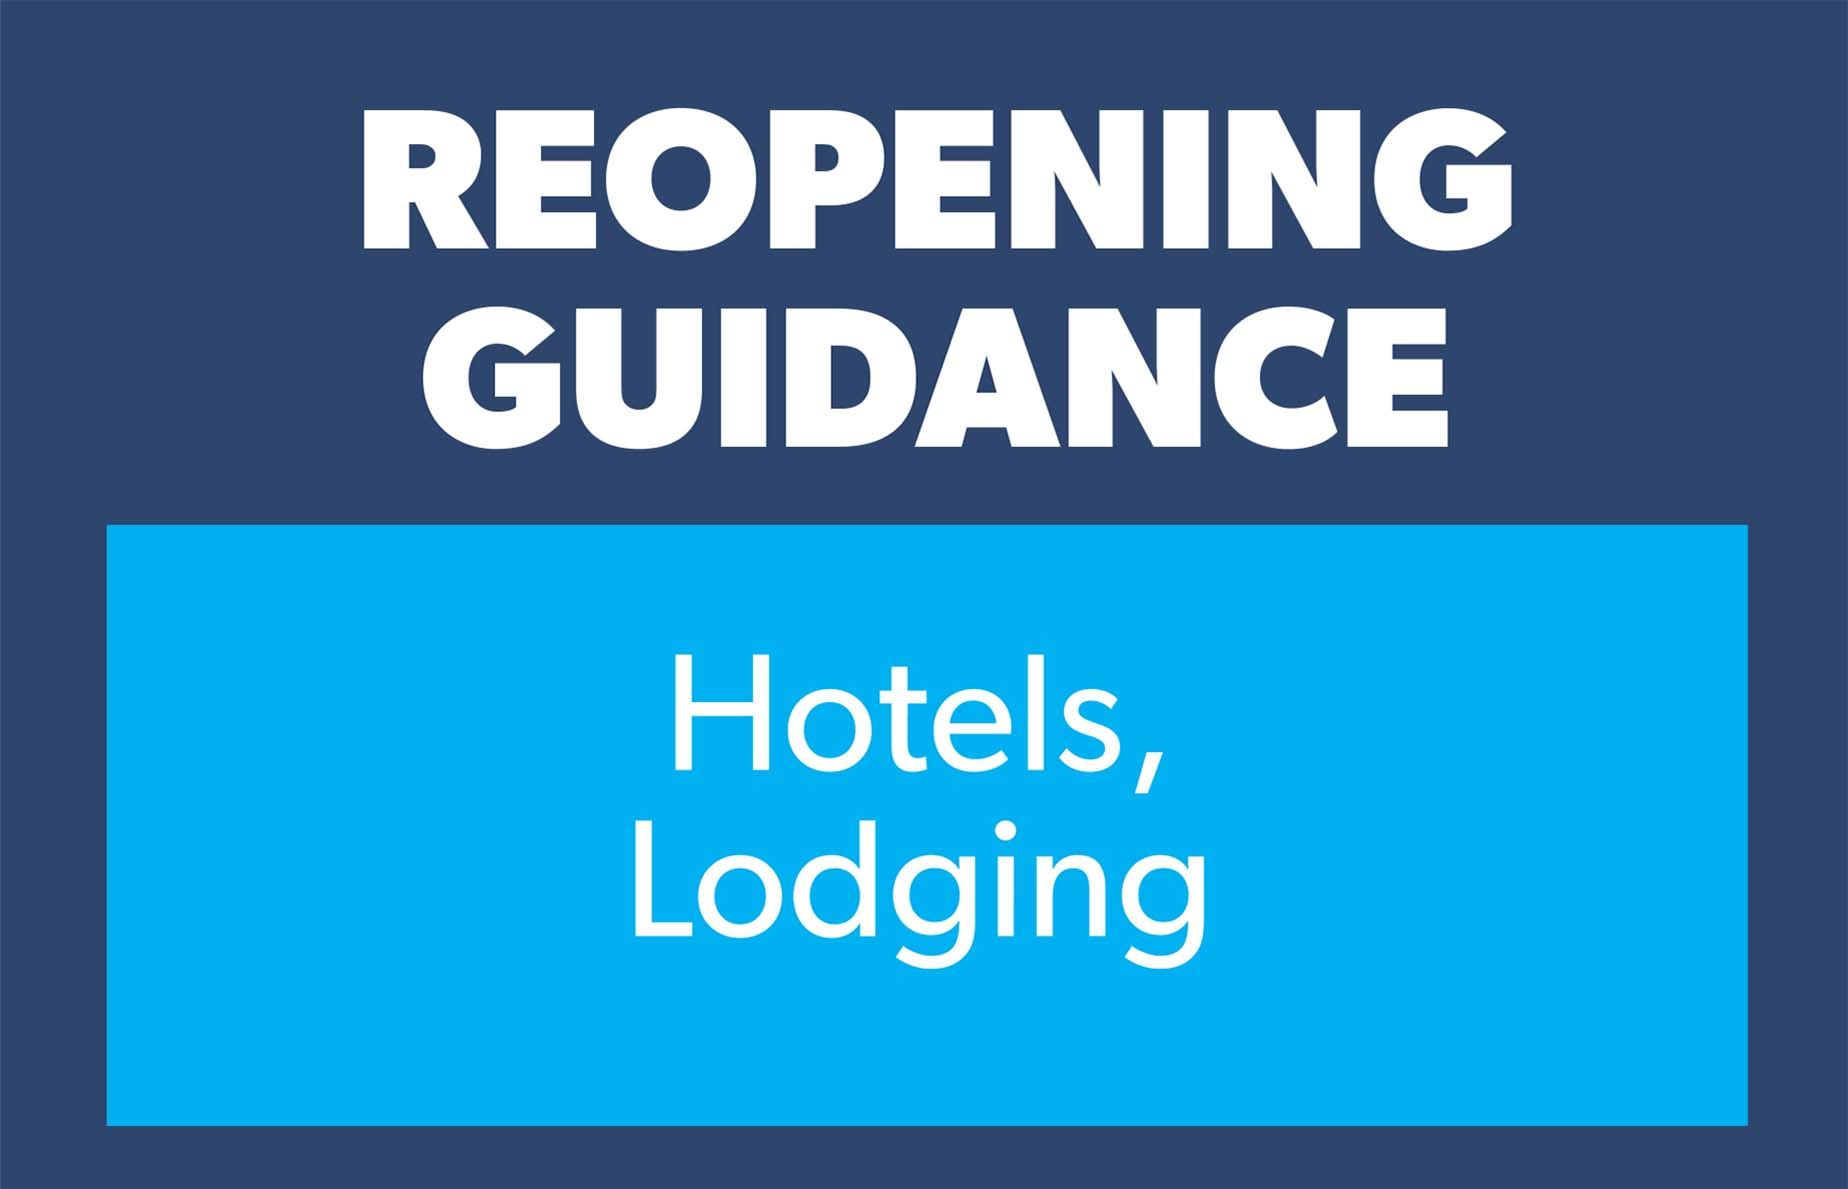 Guidance hotels